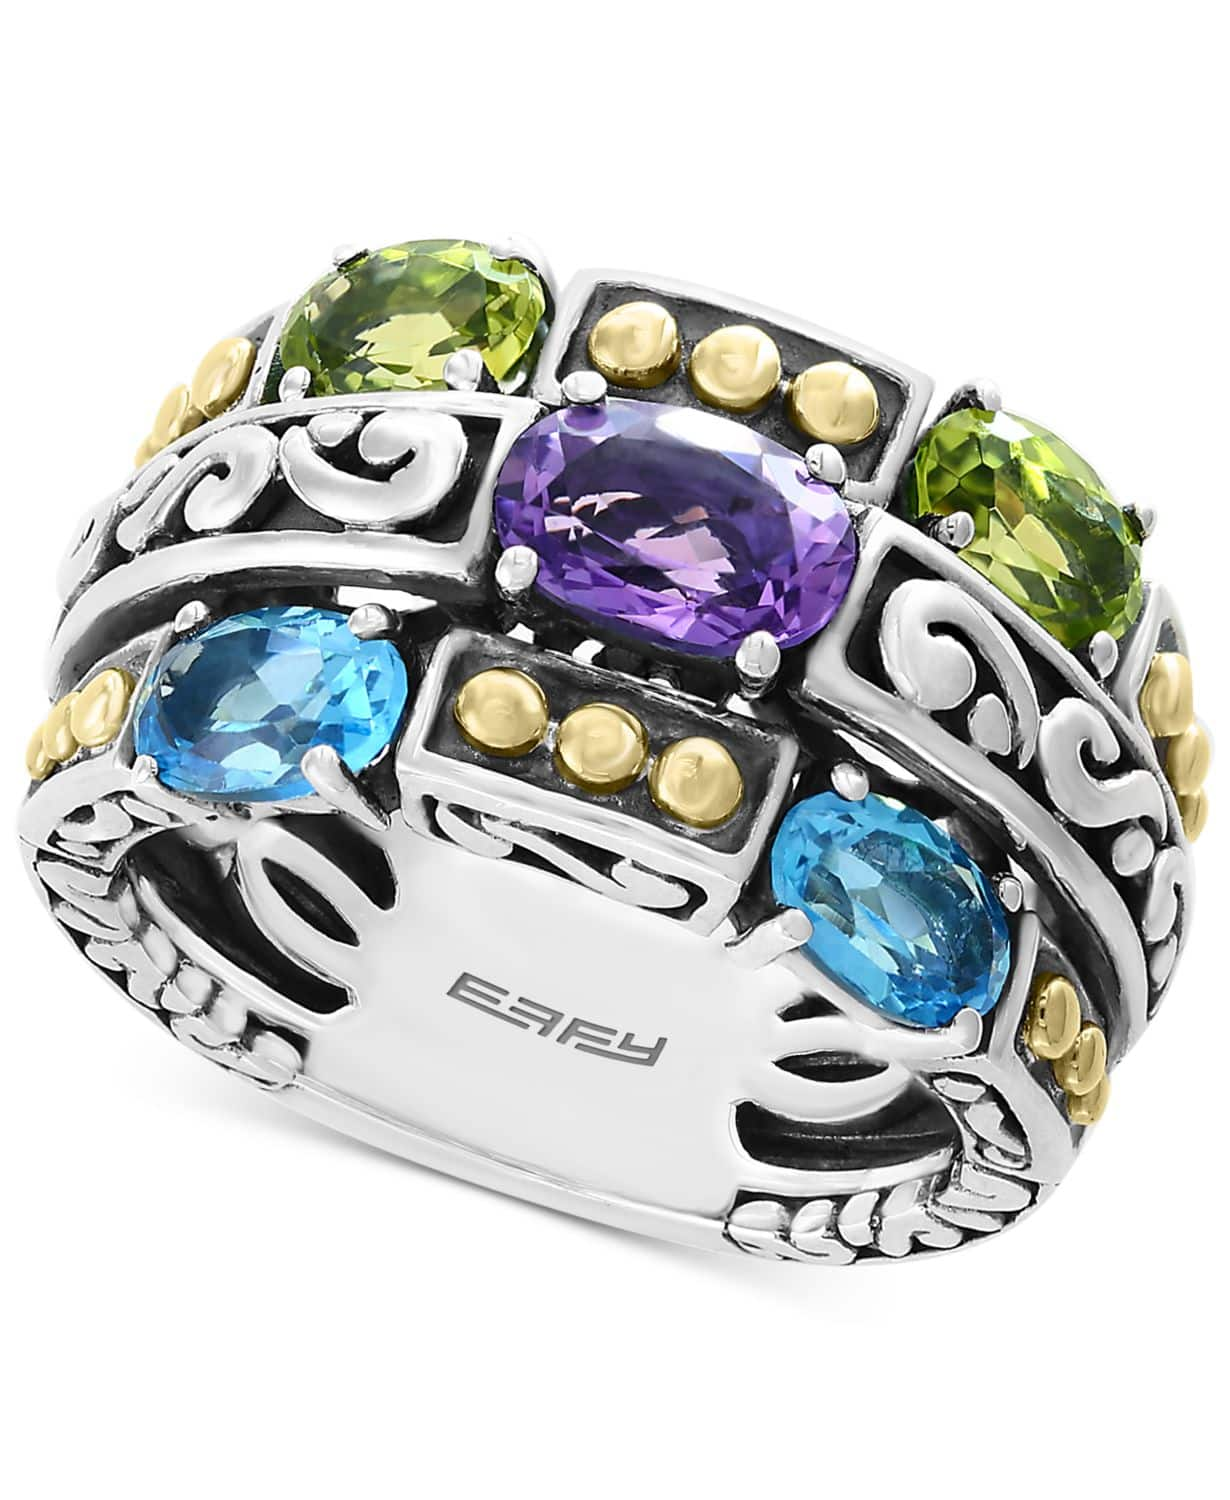 Macy's: EFFY Multi-Gemstone Statement Ring Sterling Silver & 18k Gold $69 + Free Shipping